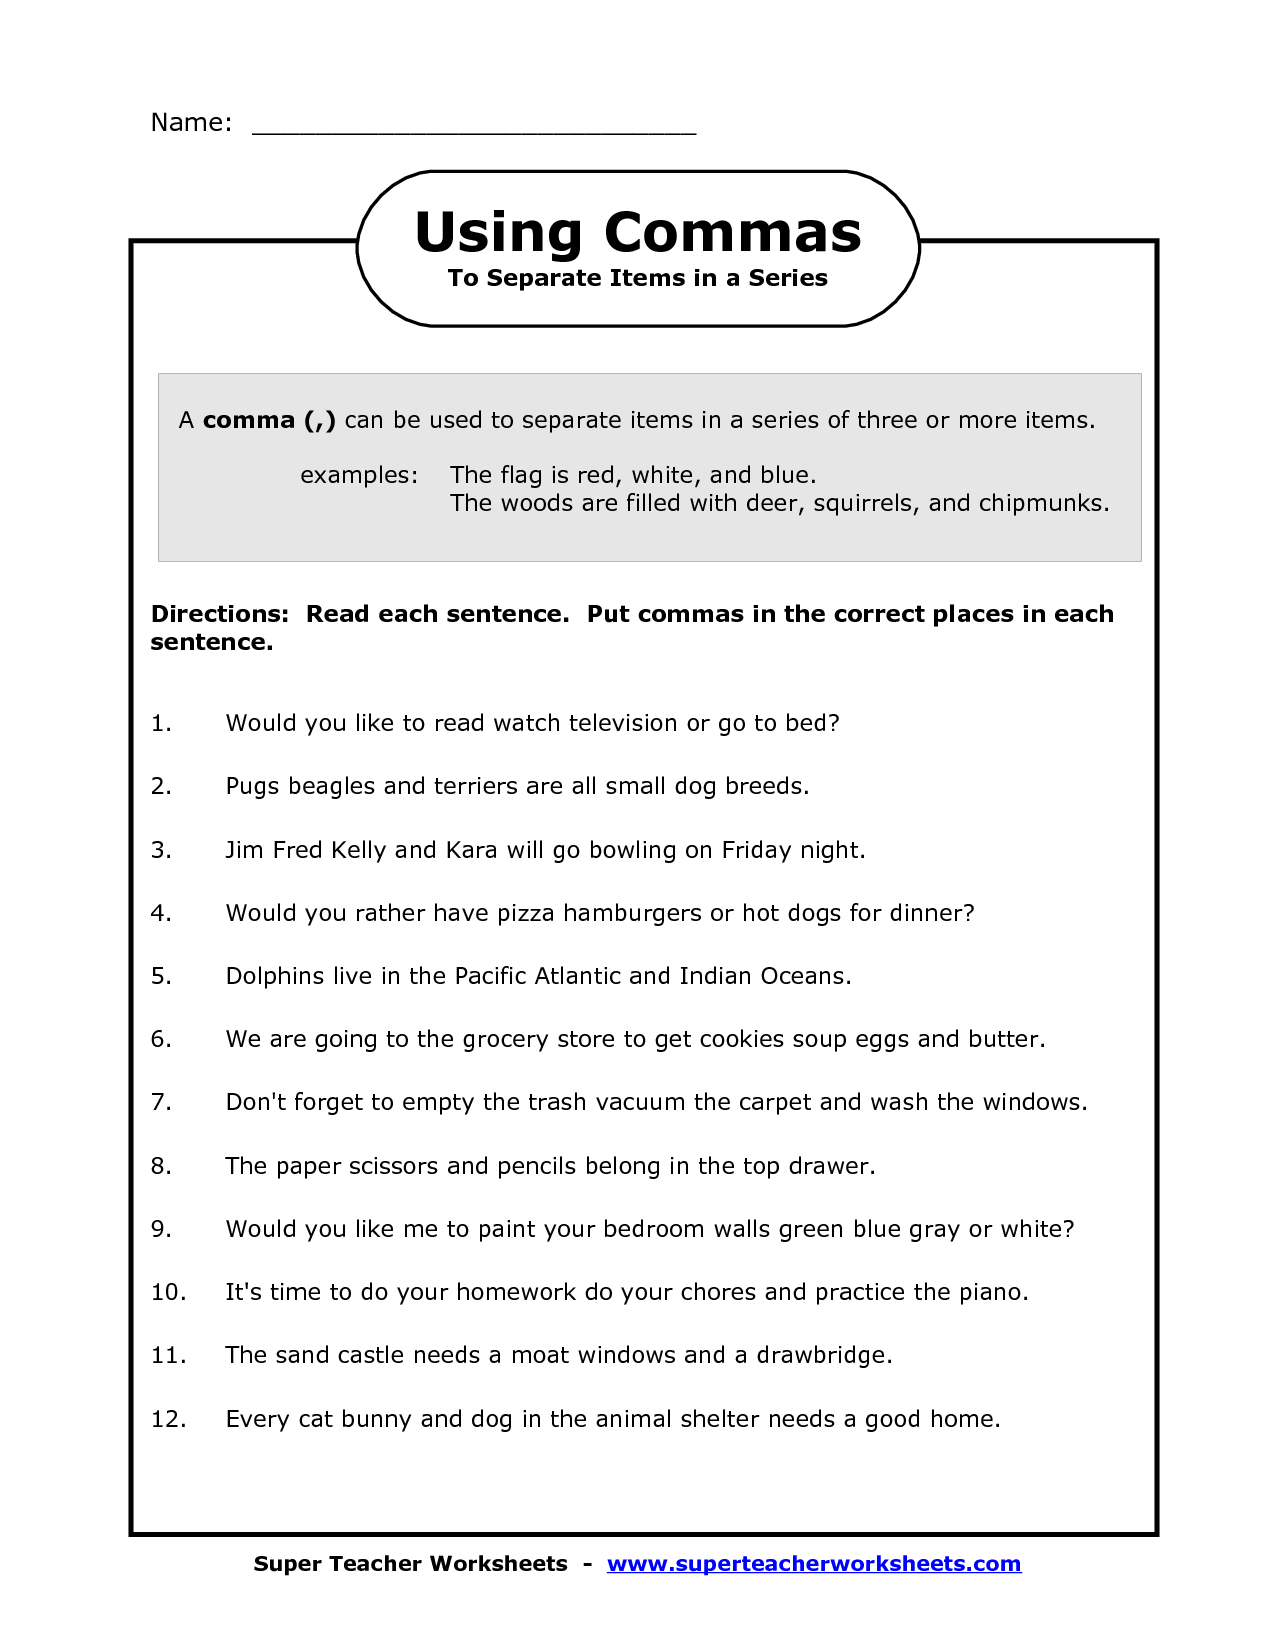 worksheet Comma Usage Worksheet comma in a series worksheets image commas worksheet grammar